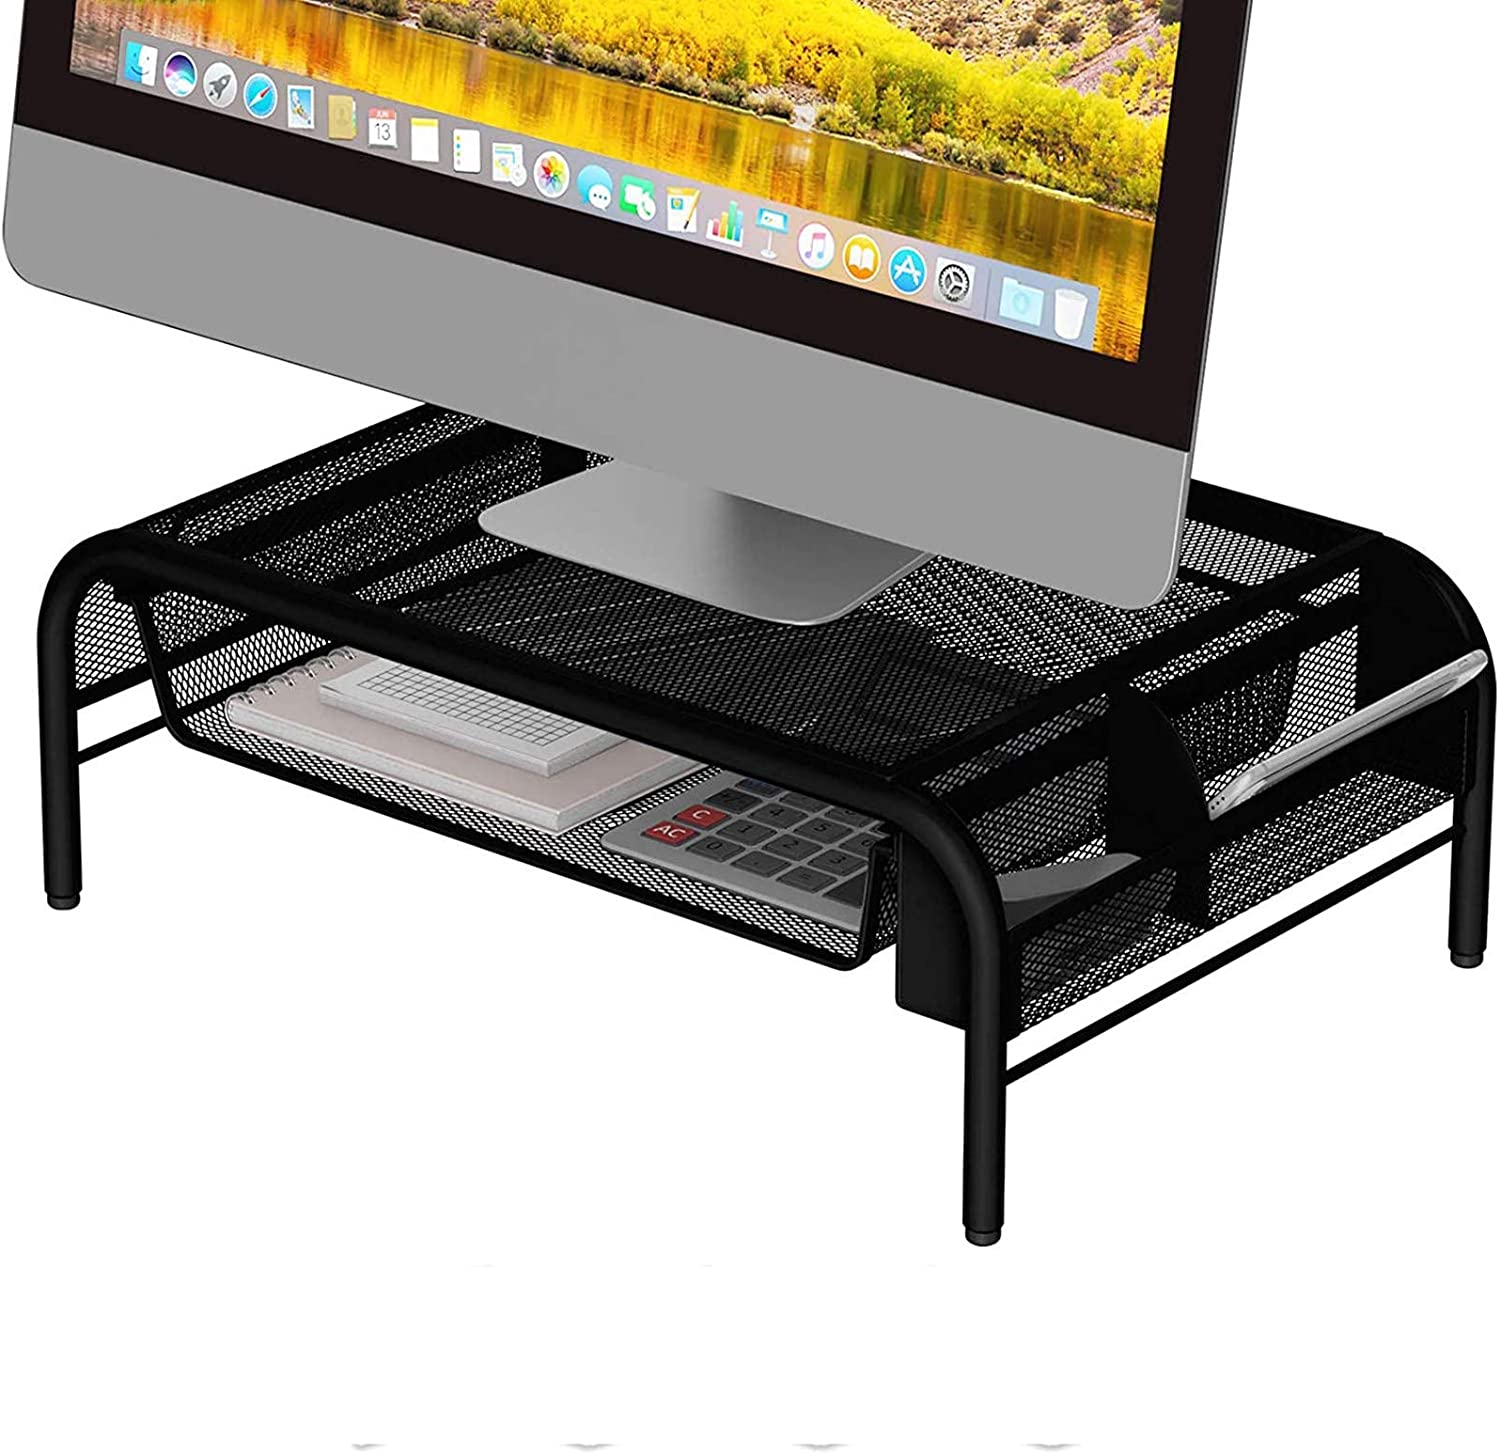 Computer Racks & Cabinets- Metal Monitor Stand Riser and Laptop Desk Stand with Organizer -Desktop Computer Stand and Monitor Riser Stand for Desk with Drawer -Improves Airflow (Black)